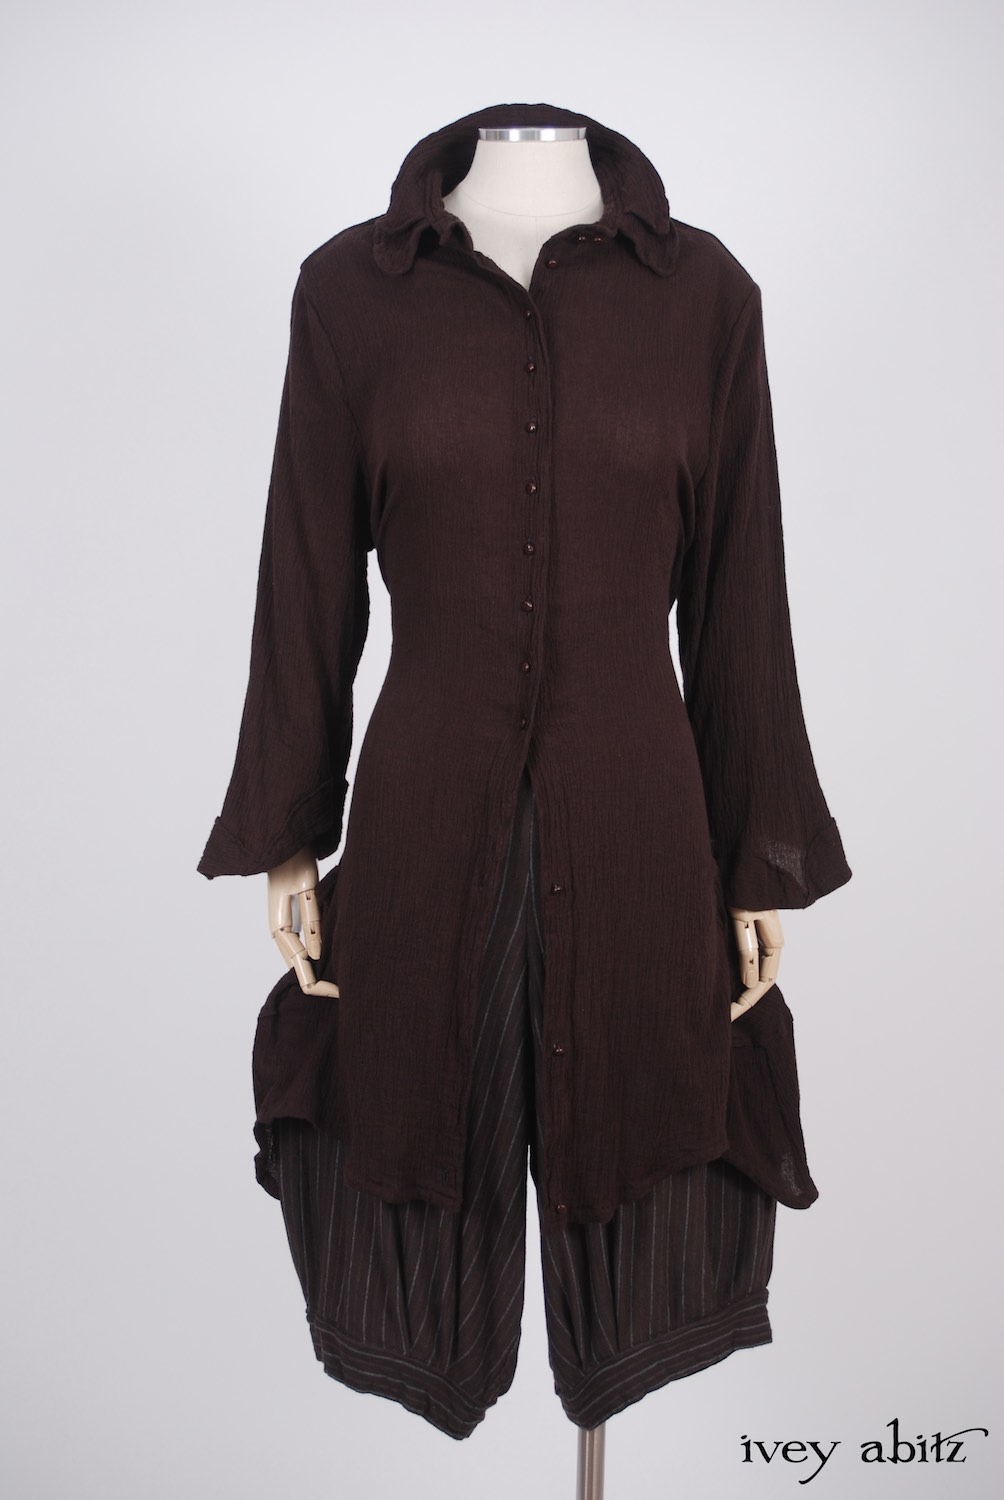 Ivey Abitz - Inglenook Shirt Jacket in Plumseed Crinkled Cotton Gauze  - Coulson Trousers in Plumseed Silky Striped Knit, High Water Length